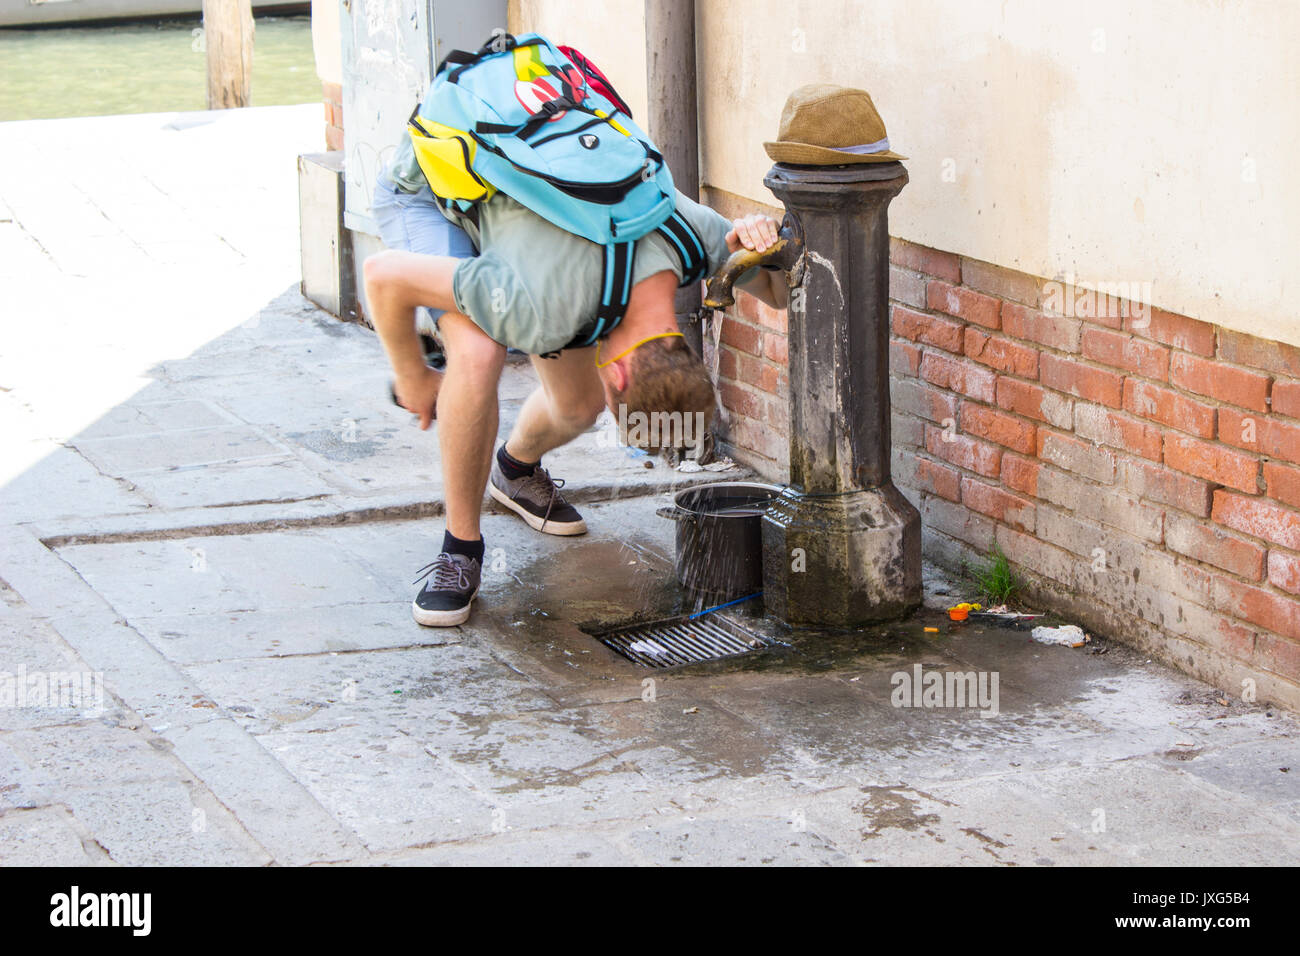 A man cooling himself in a hot summer day in Venice, Italy - Stock Image